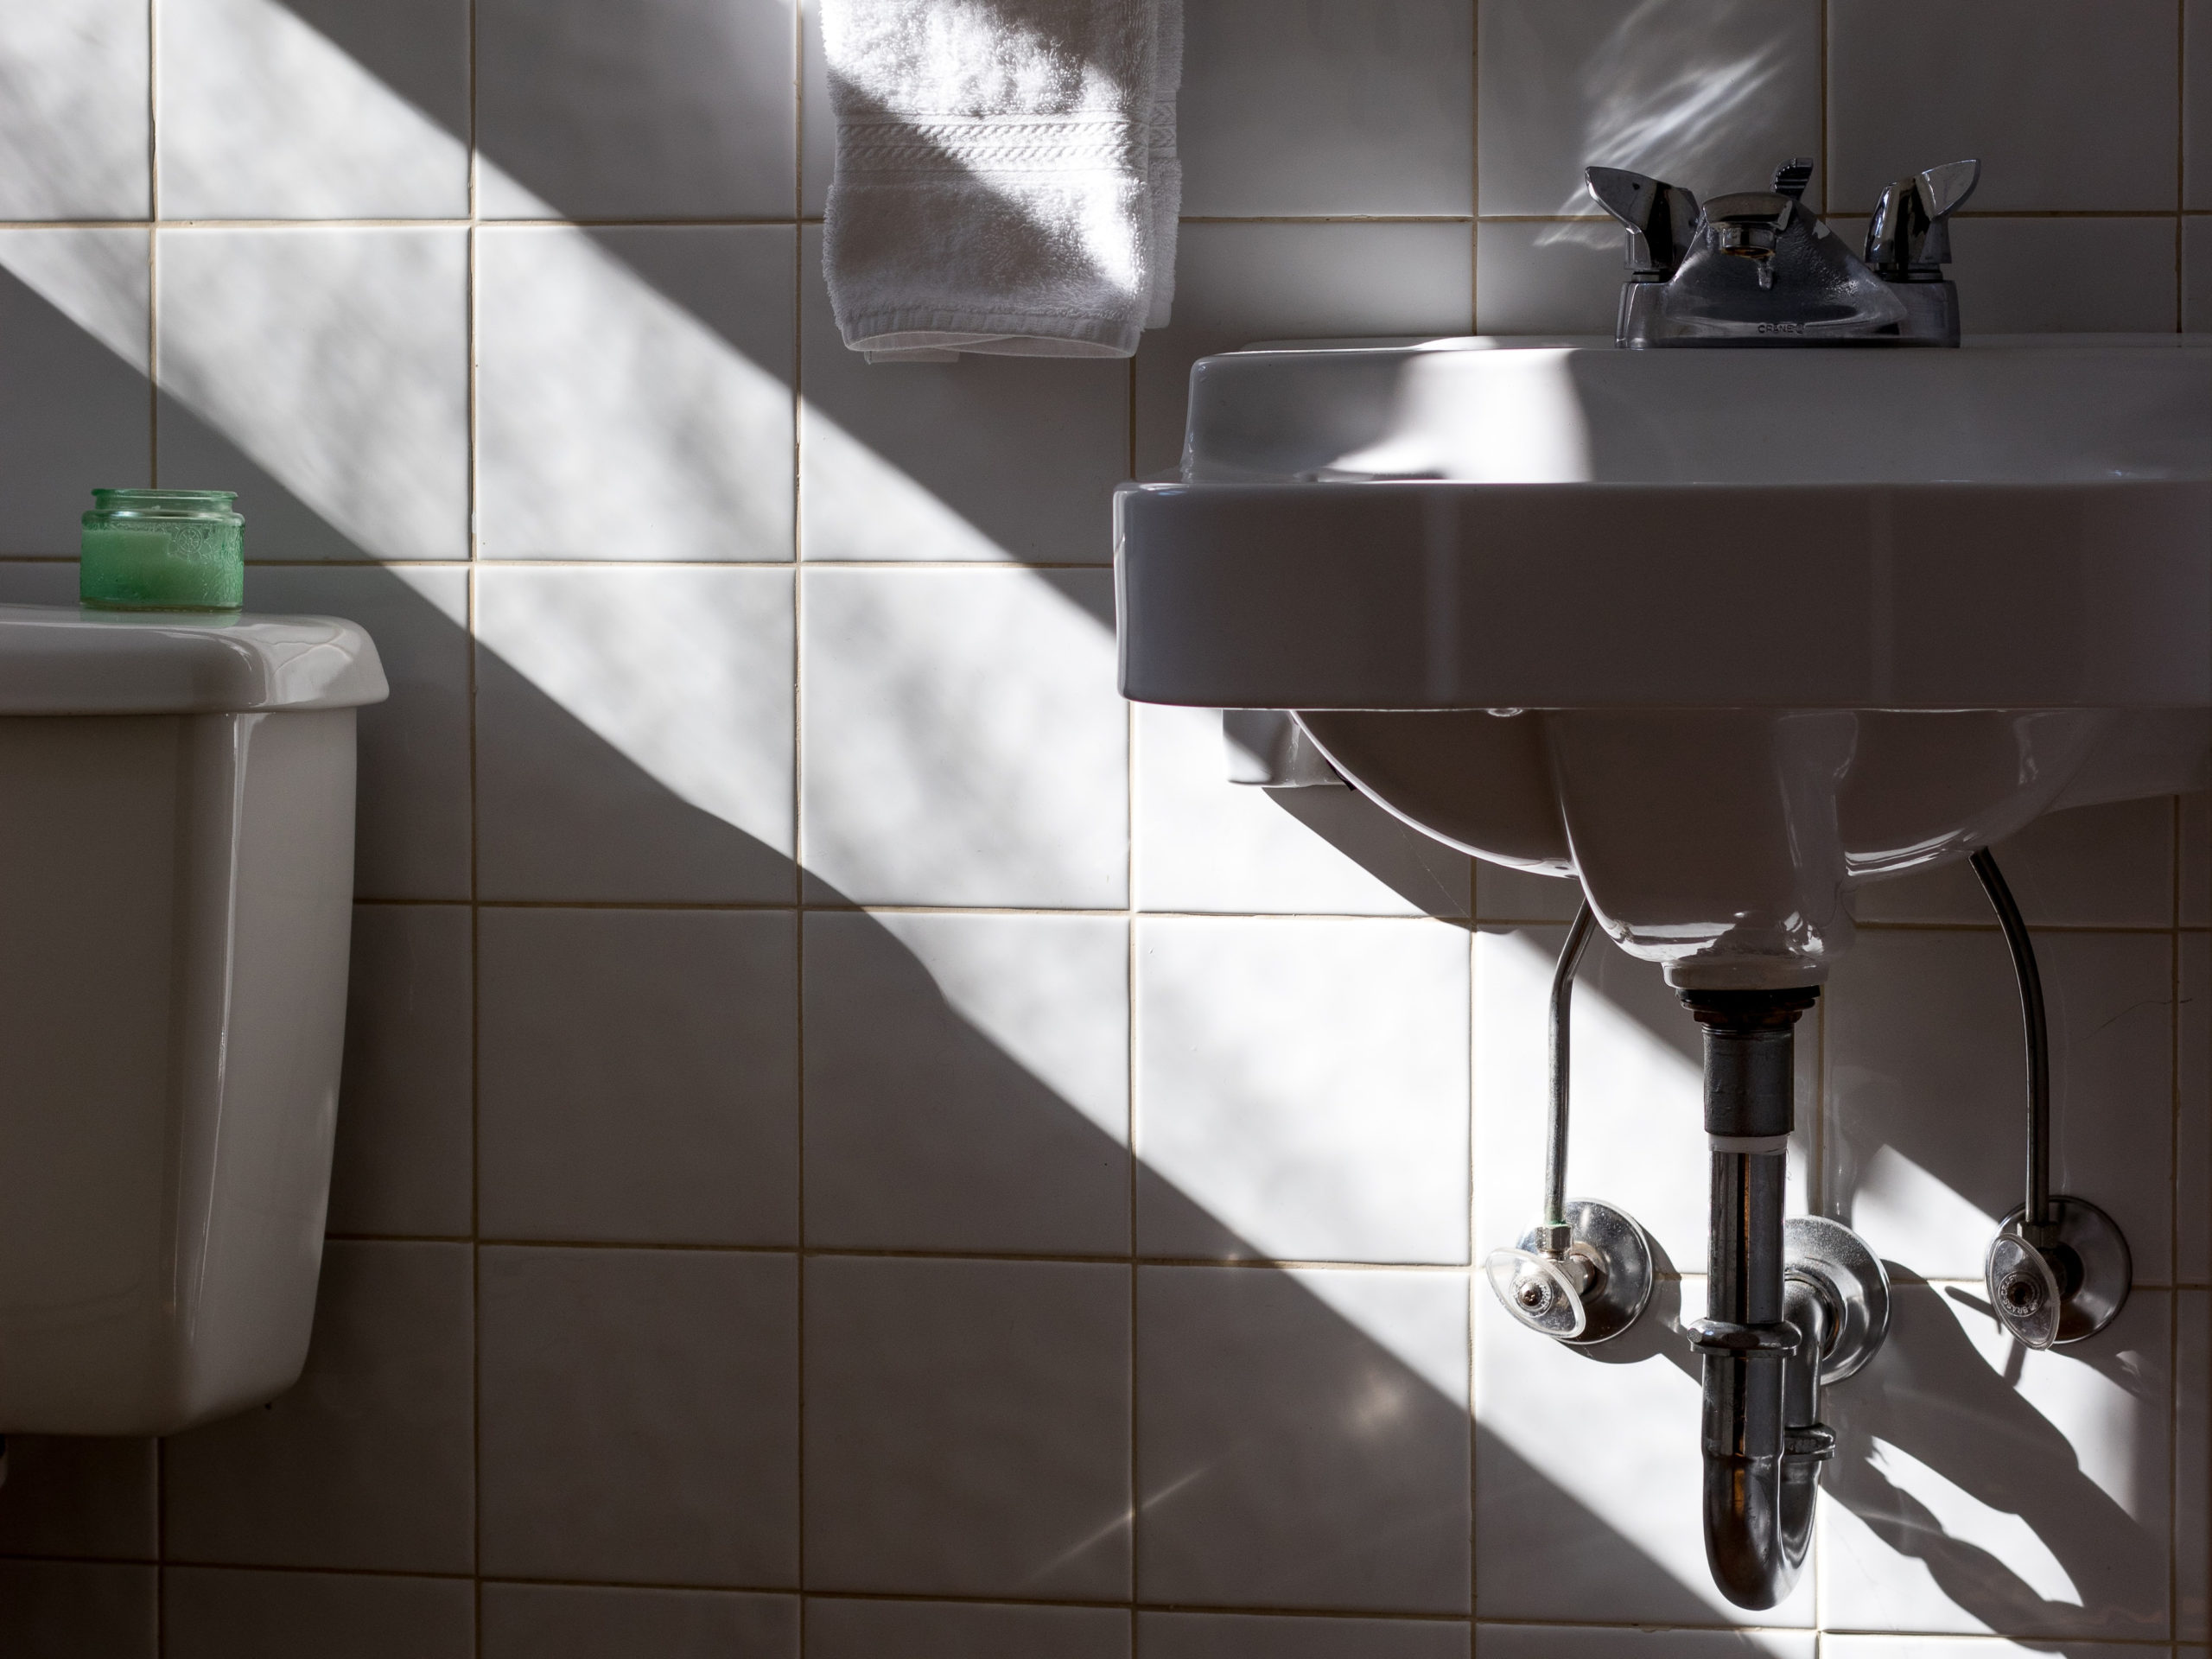 Beautiful bathroom with a shaft of light shining on white tile